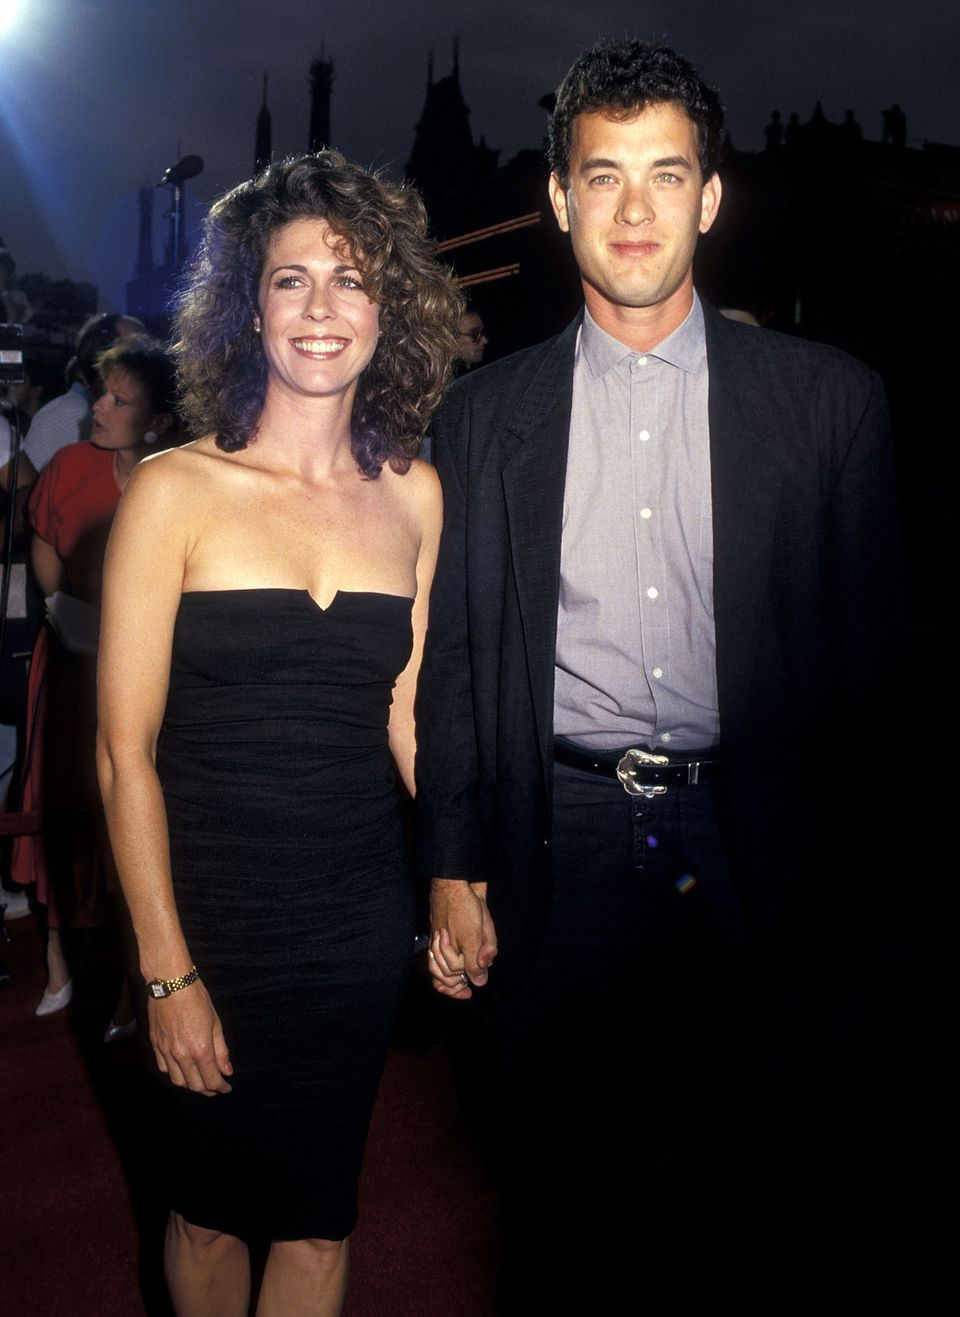 Tom Hanks & Rita Wilson got married in April 1988.